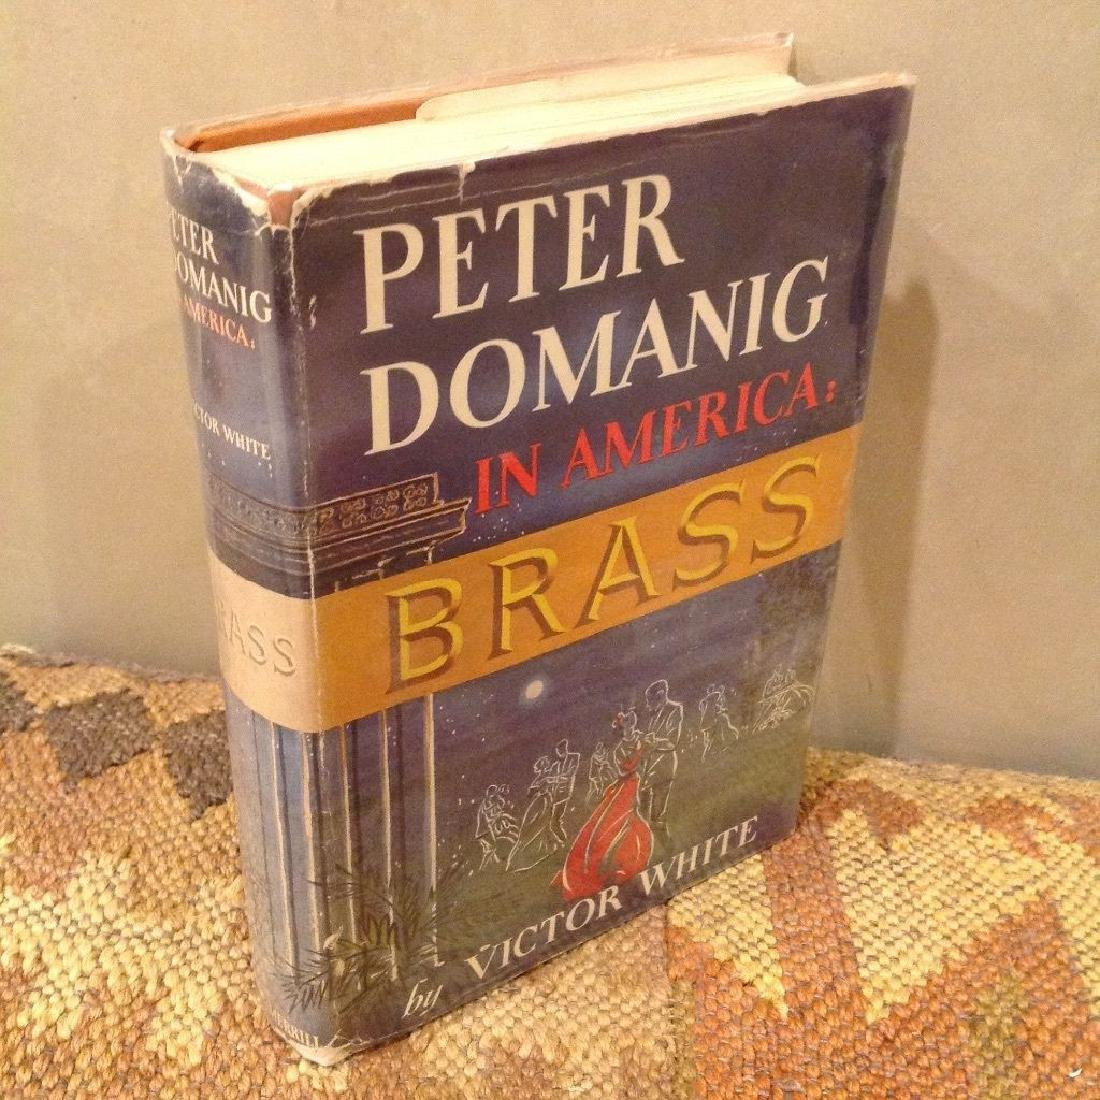 Peter Domanig in America: Brass by Victor White Signed